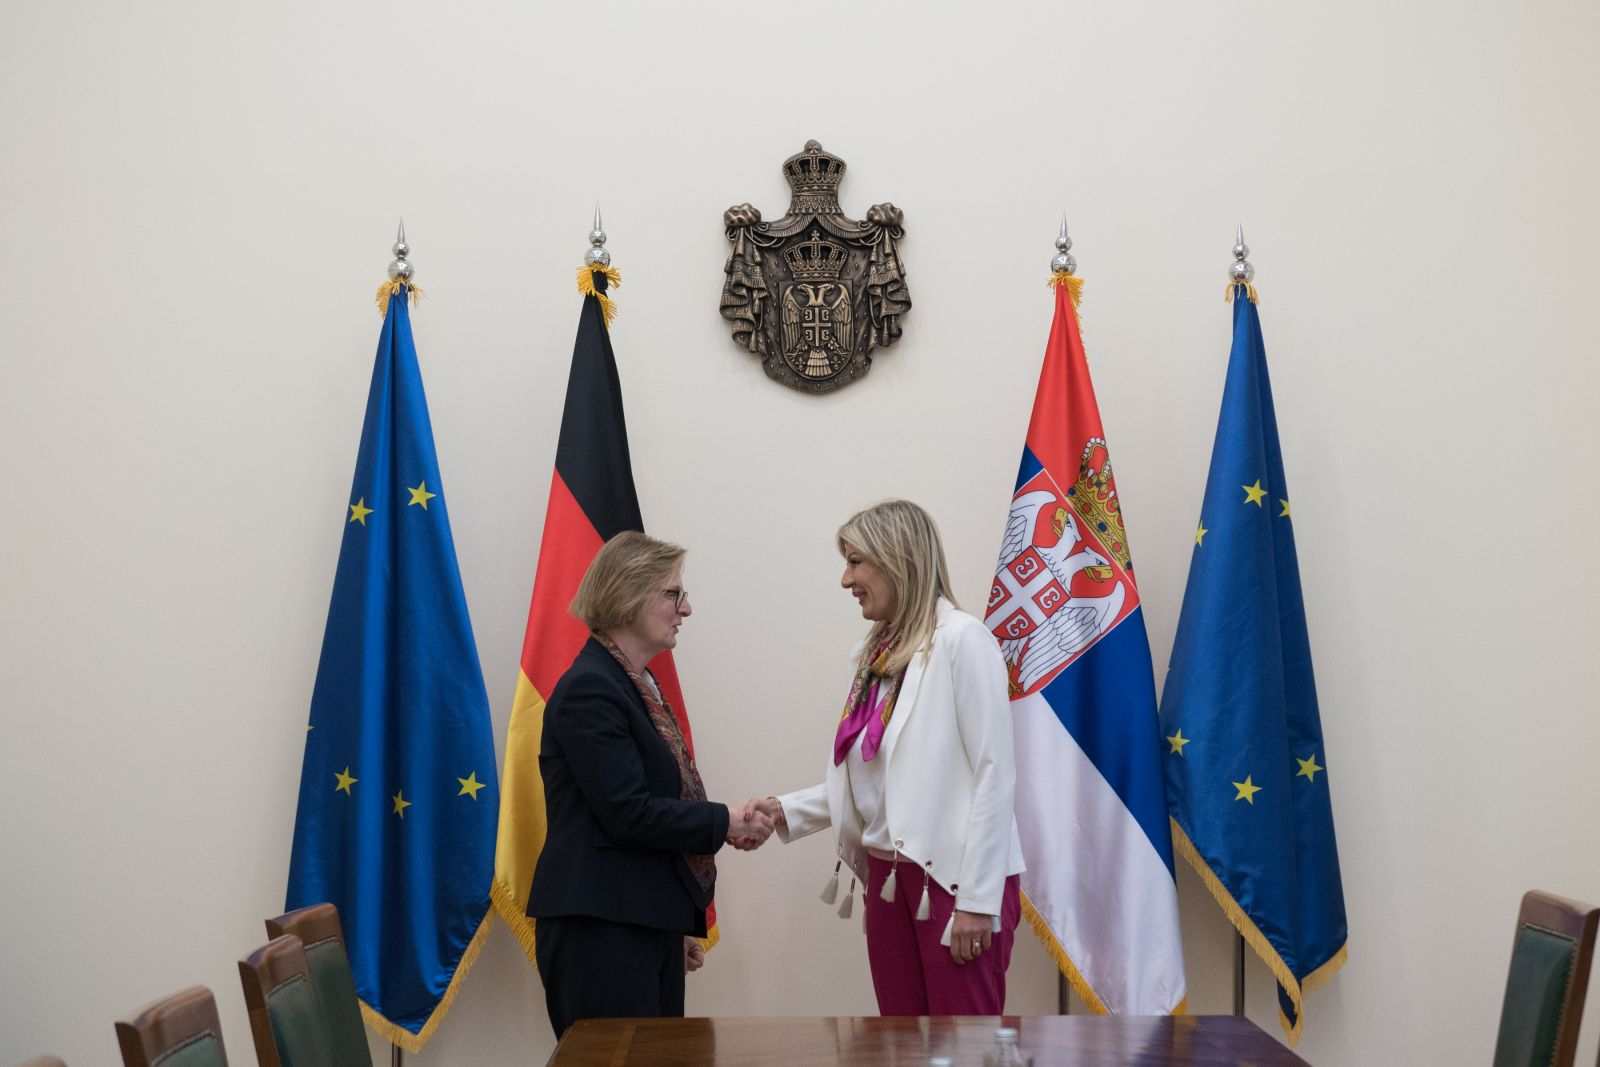 J. Joksimović and Schütz: Germany is supporting the credible enlargement policy